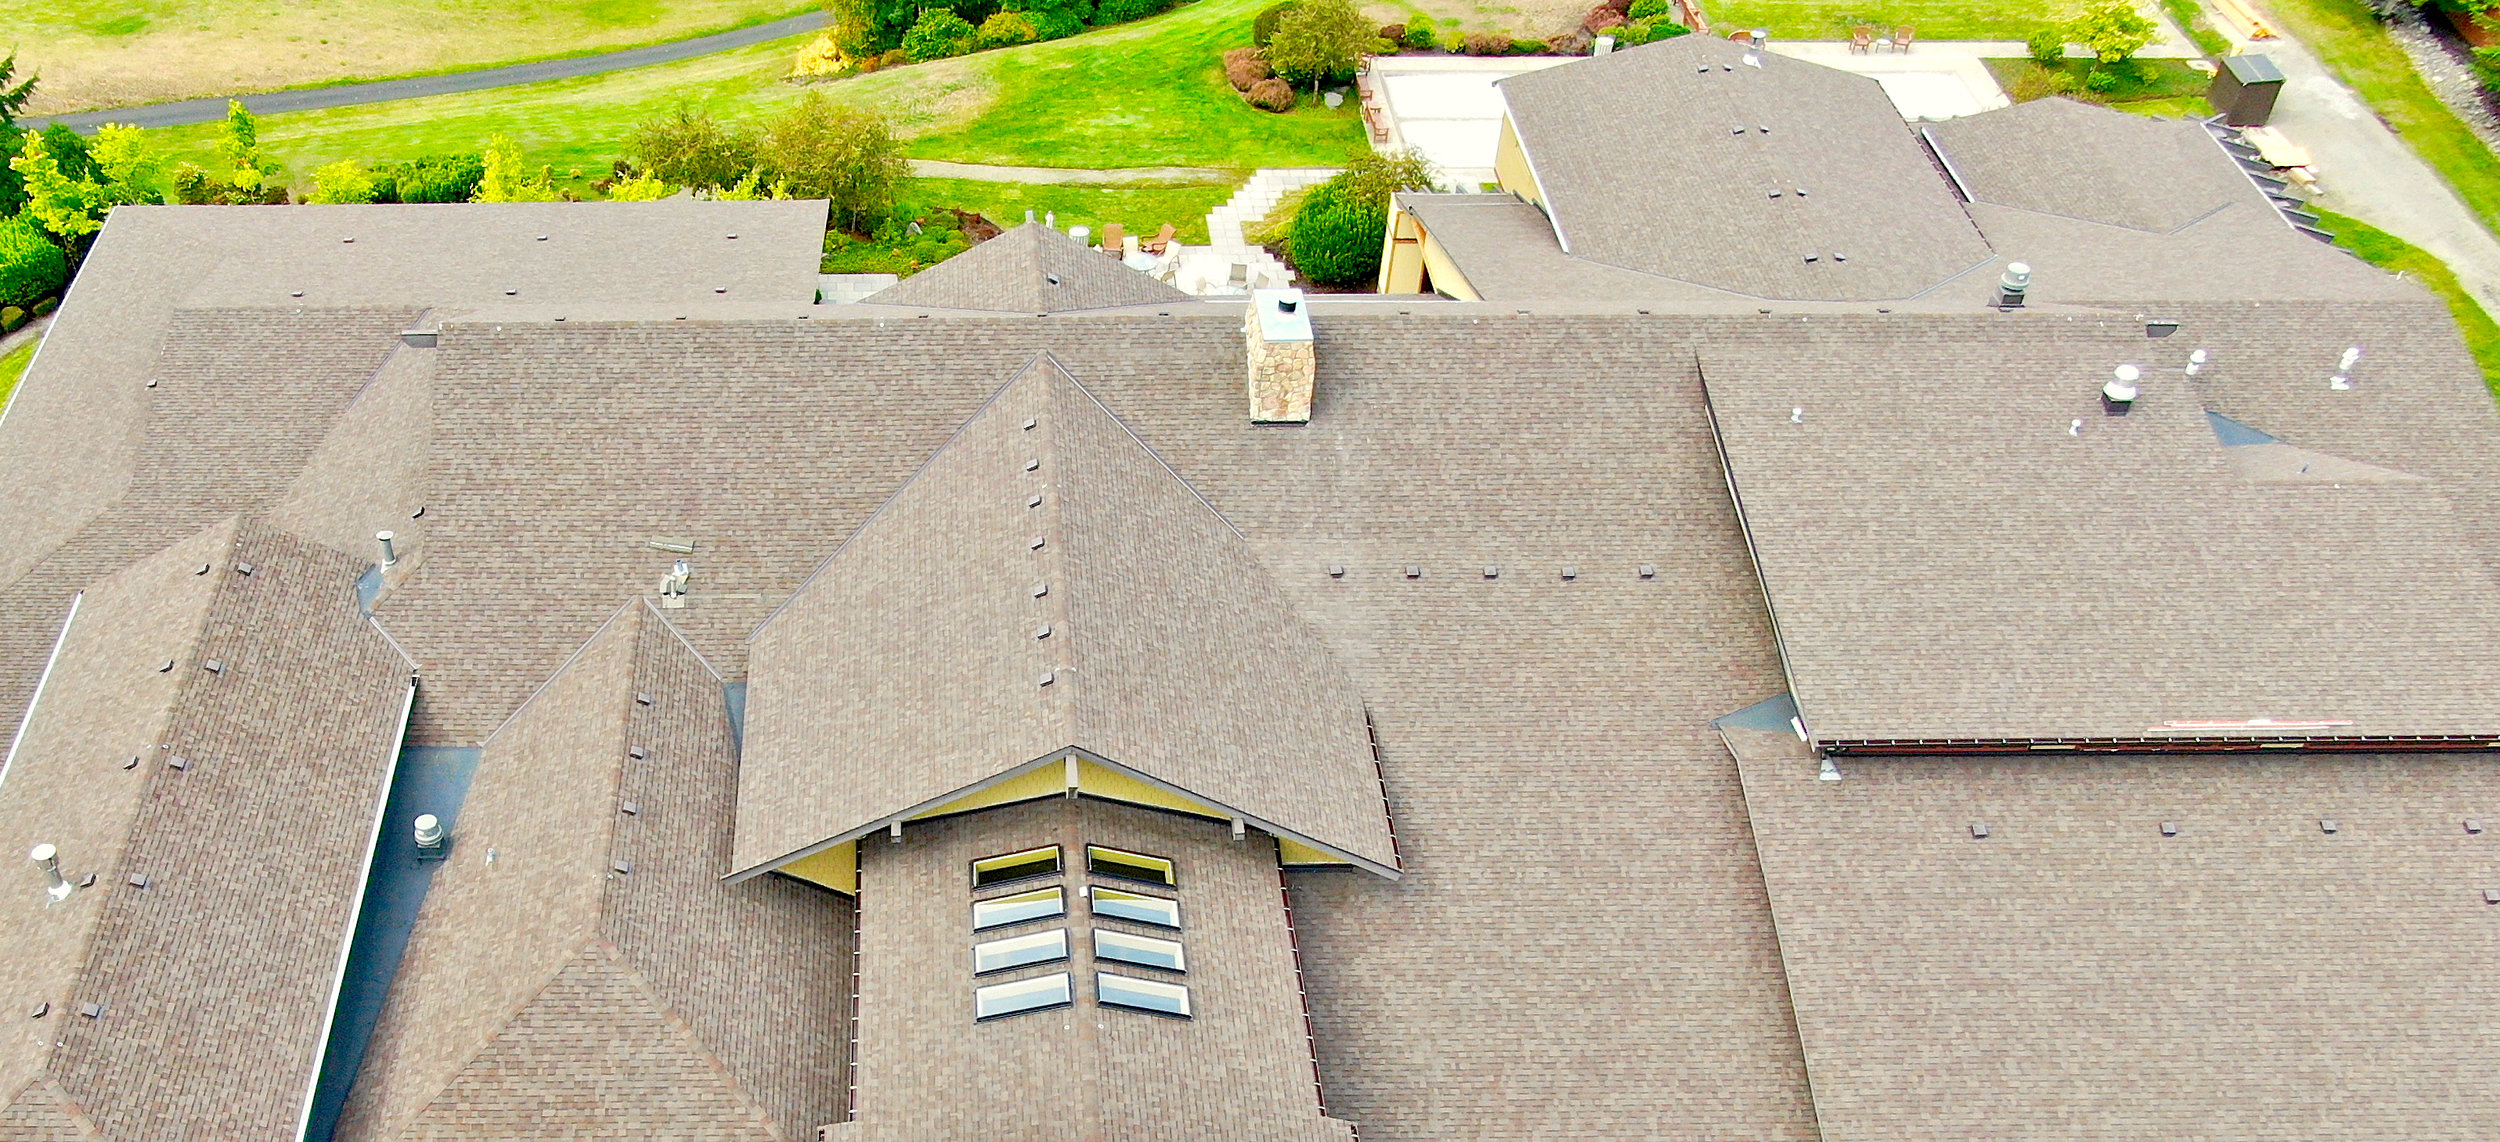 The Completed Roofing System